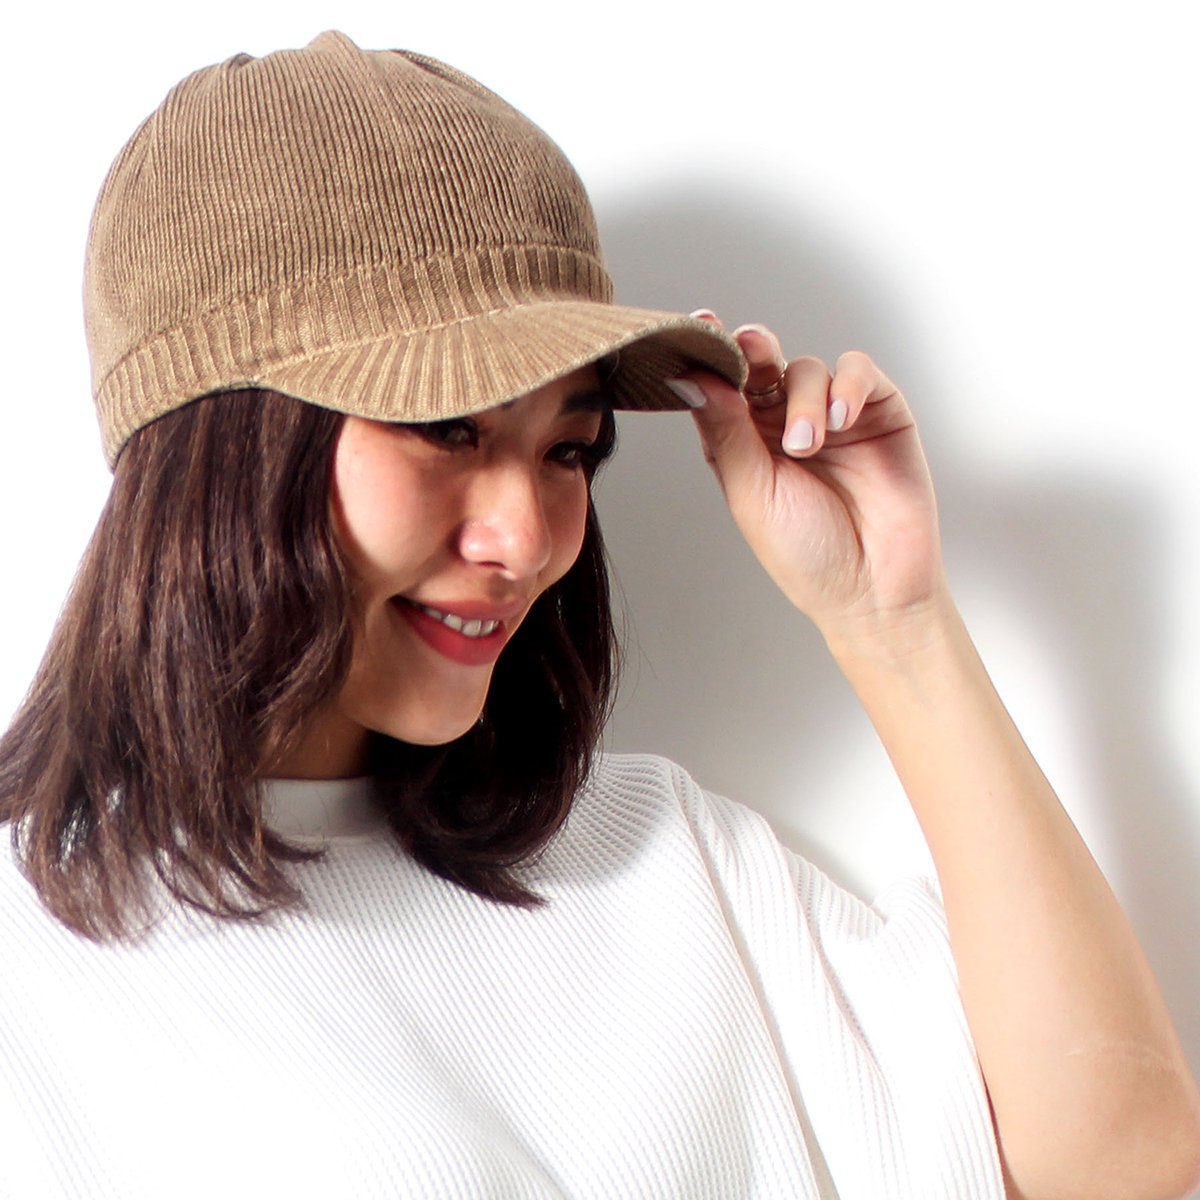 OVER-DYED BRIM KNITCAP 詳細画像9